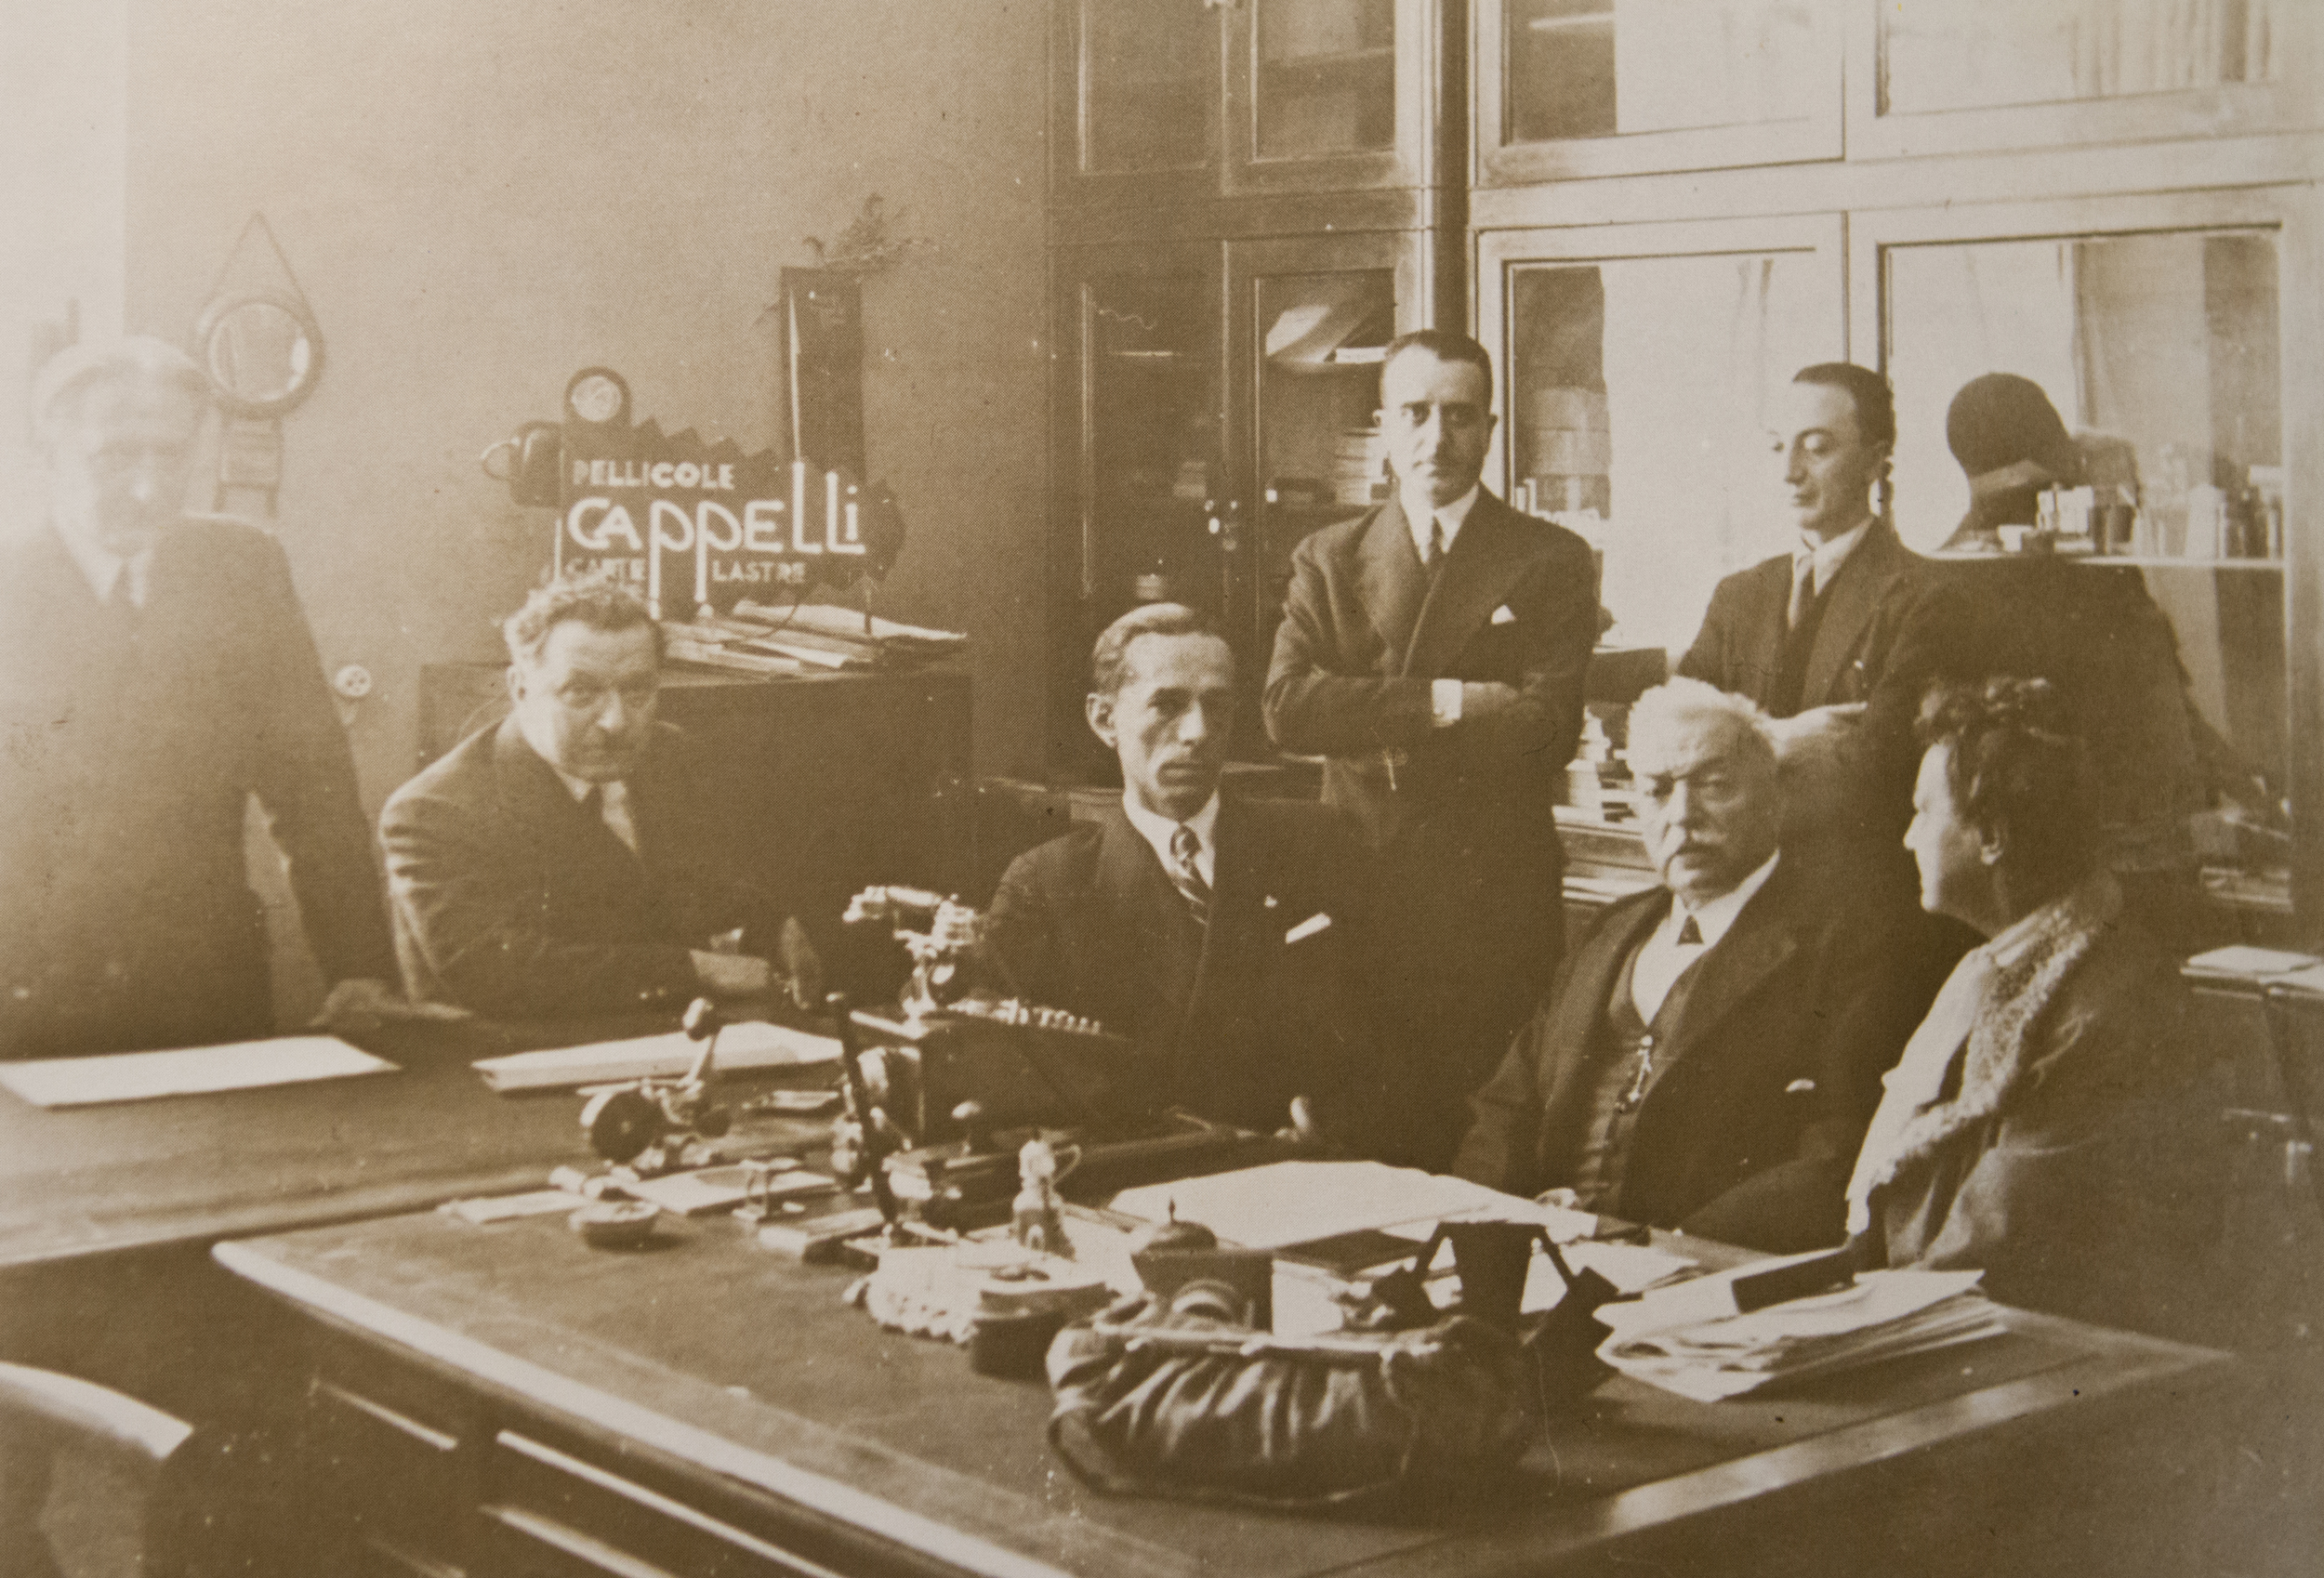 Michele Cappelli, shown seated between his wife and Franco Marmont, at the sale of Cappelli to F.I.L.M